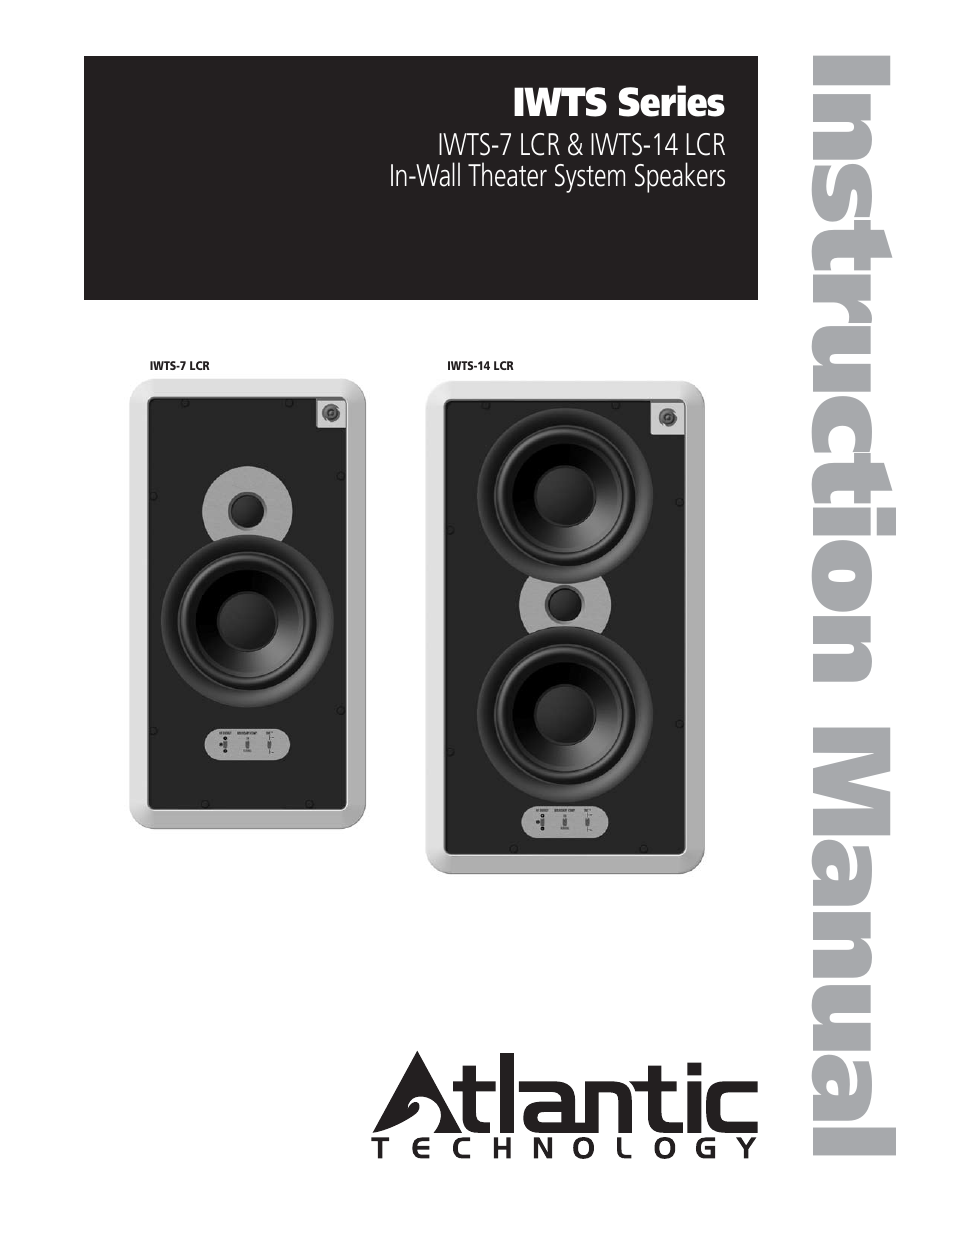 atlantic technology iwts 14 lcr user manual 8 pages rh manualsdir com